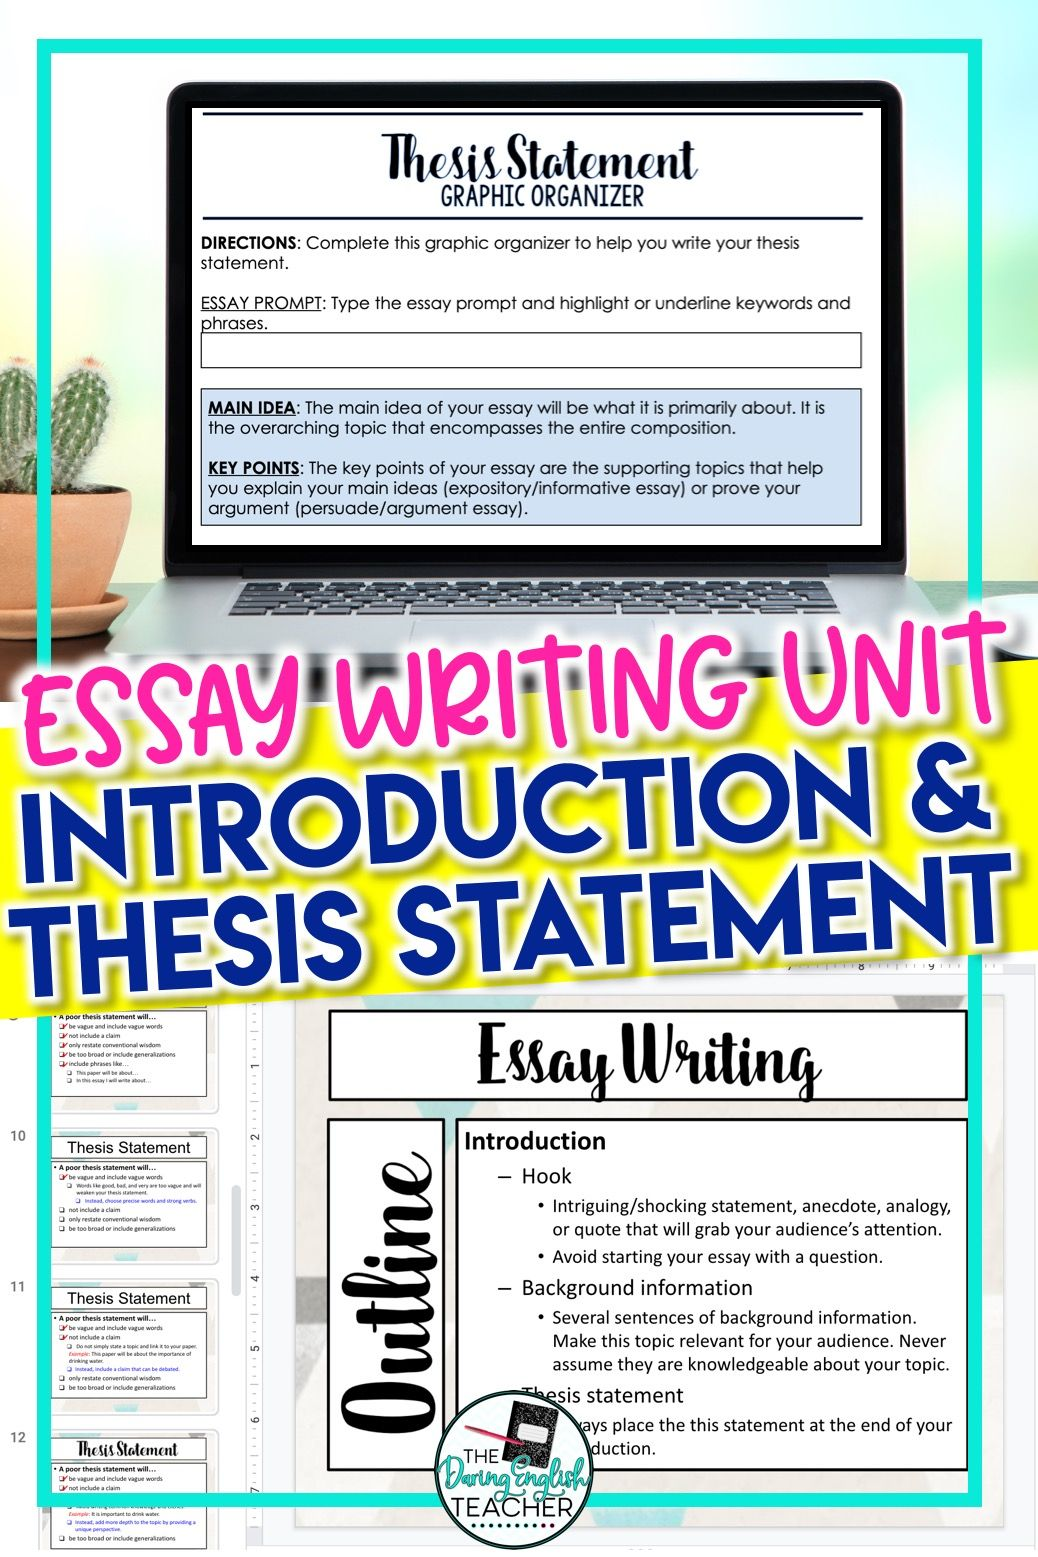 Digital Essay Writing: Introductions and Thesis Statements for